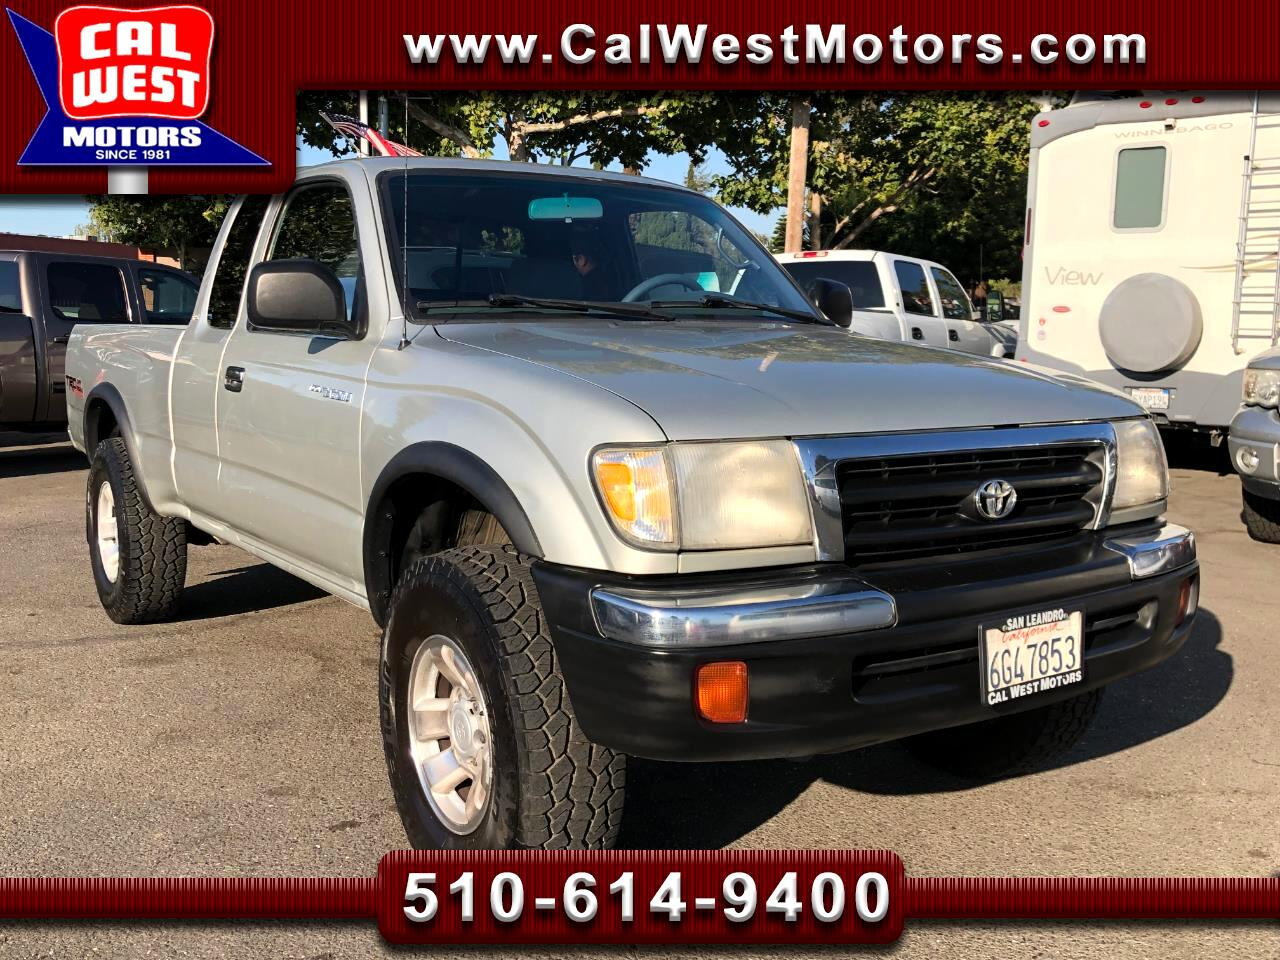 2000 Toyota Tacoma Prerunner XtraCab V6 SR5 TRD OffRoad VeryClean